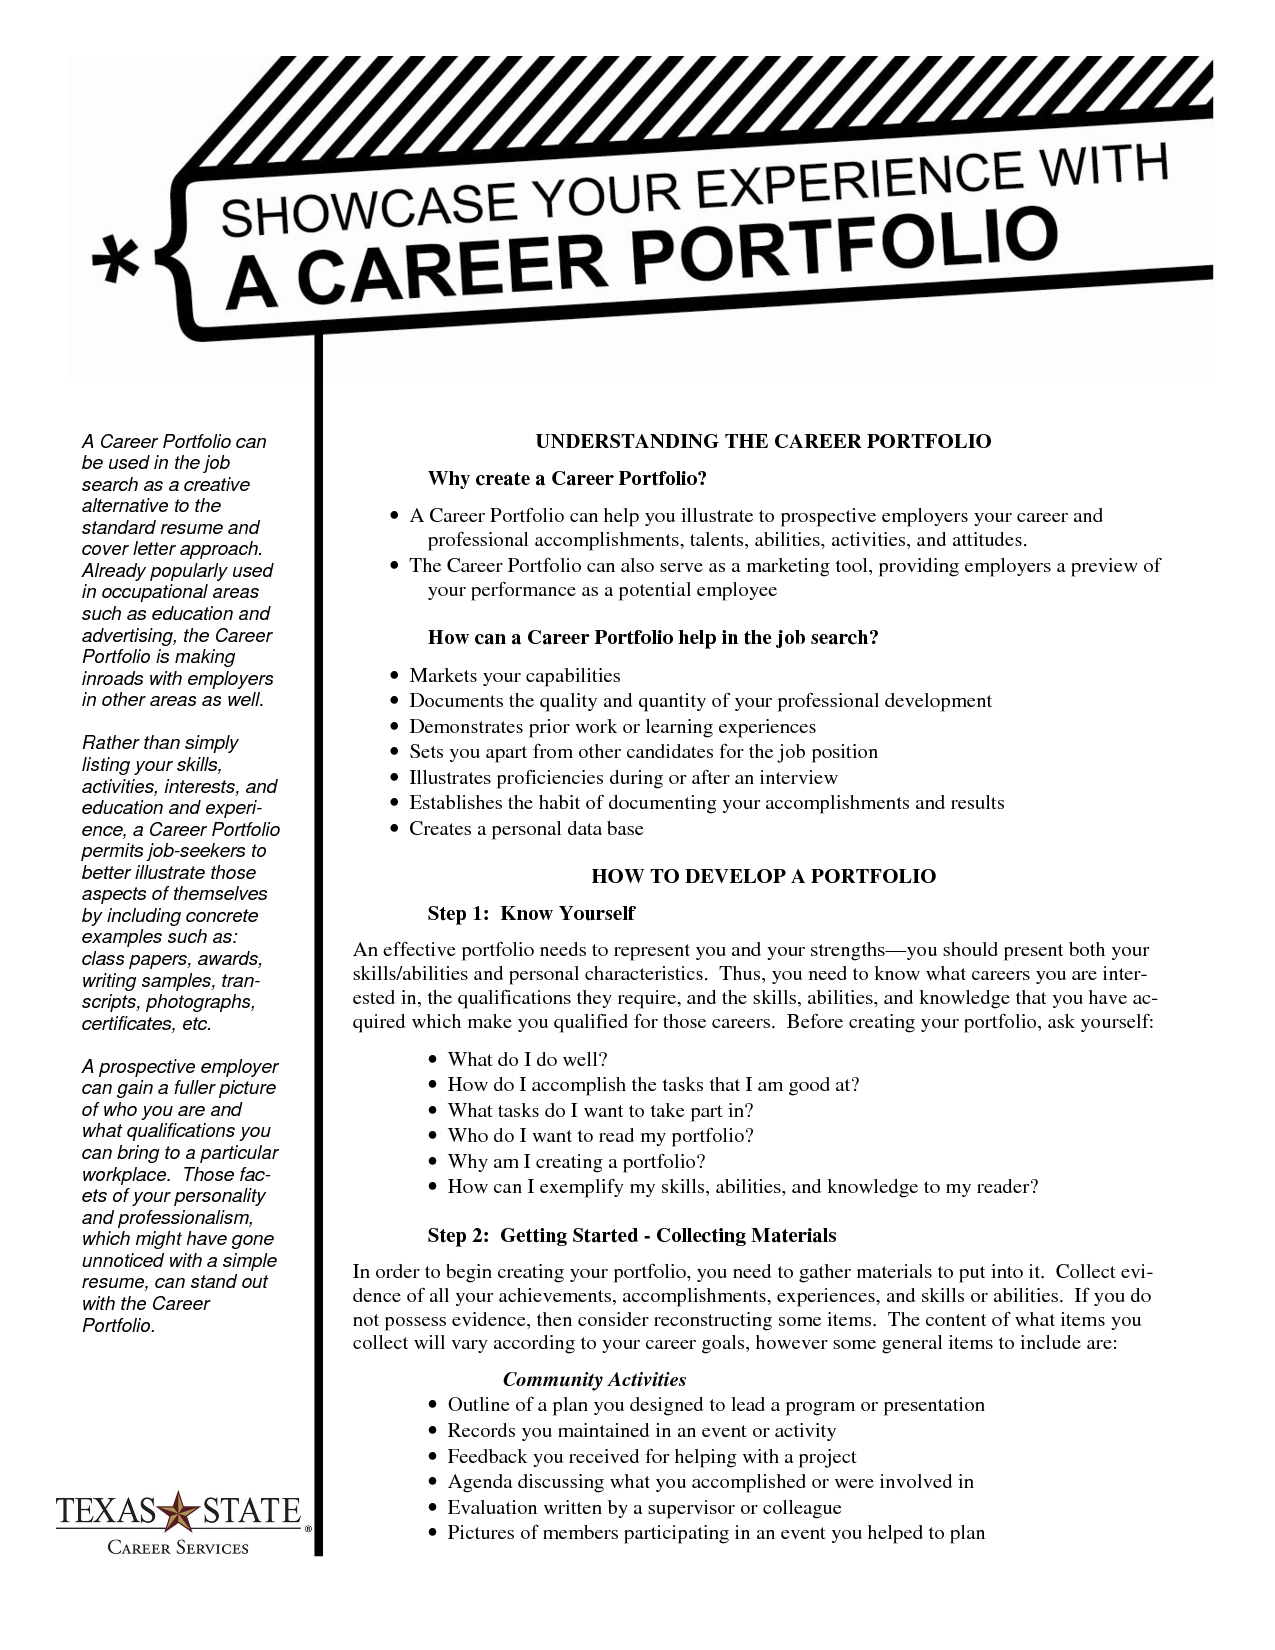 sample of portfolio outline career portfolio handout job